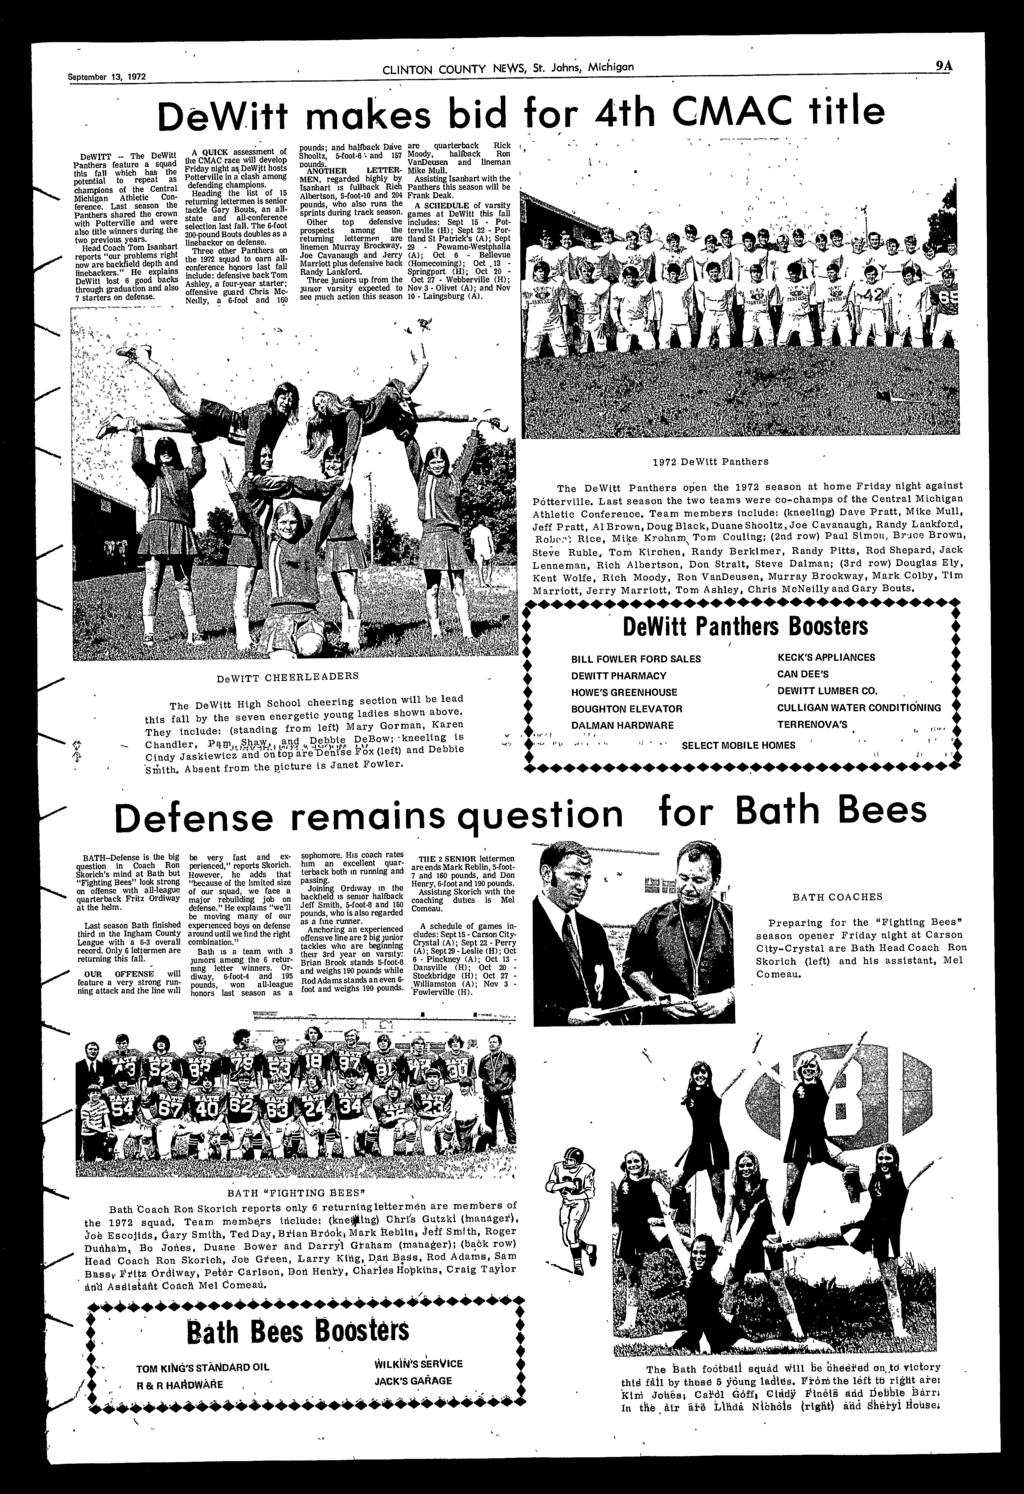 13, 1972 CLINTON COUNTY NE\VS, St Johns, Michigan 9A DeWitt makes bid for 4th CMAC title DeWITT -- The DeWitt Panthers feature a squad this fall which has the potential to repeat as champions of the